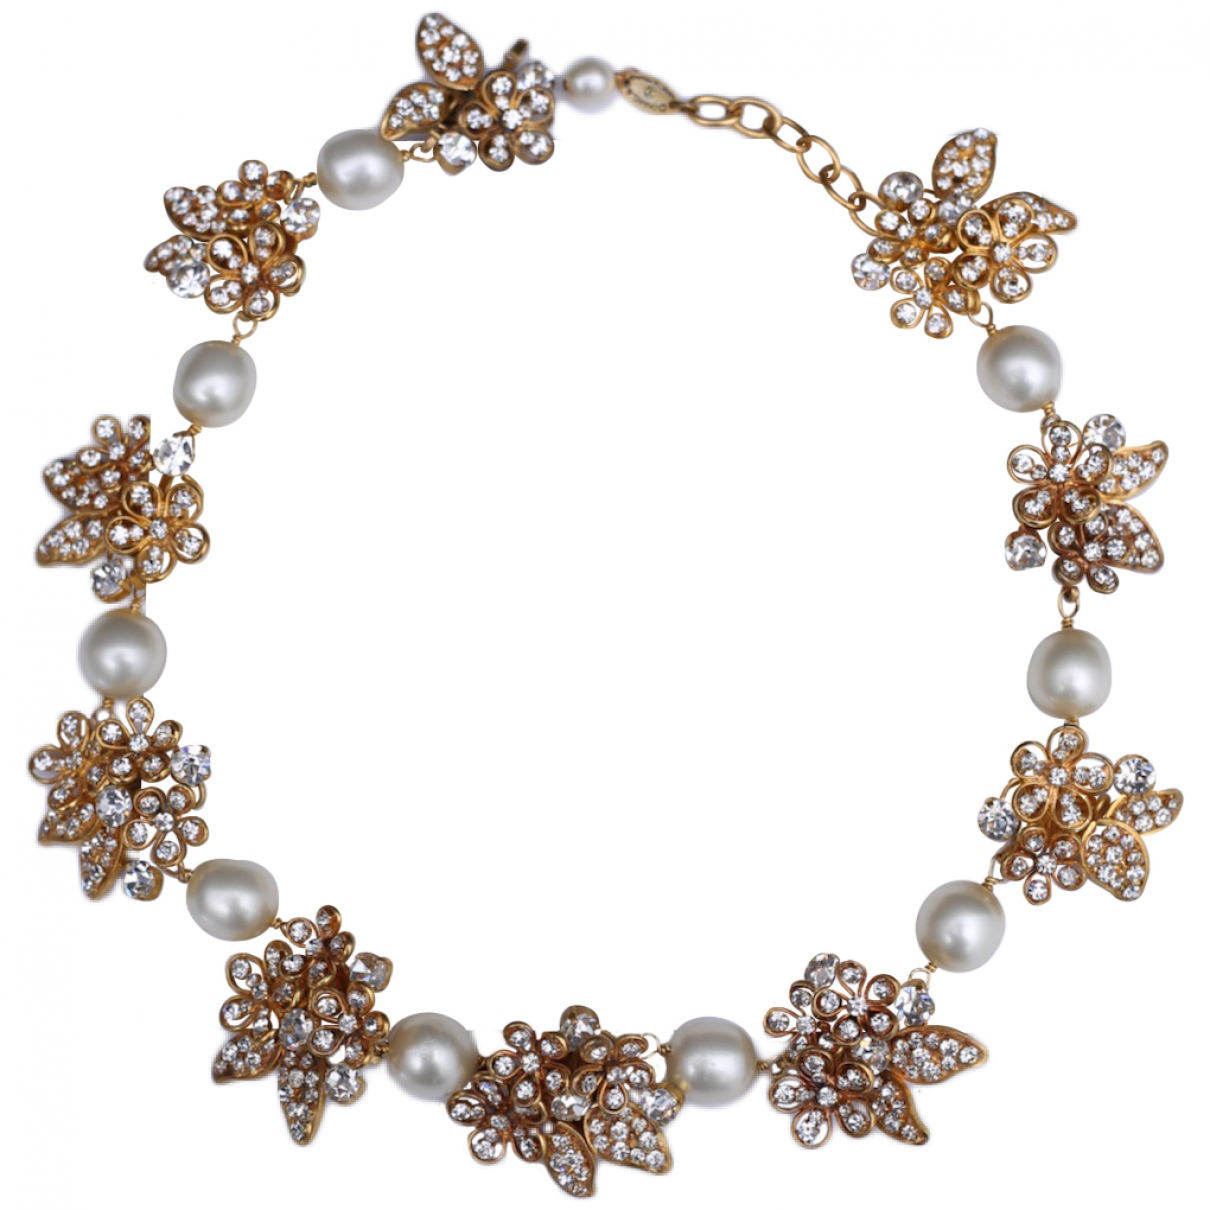 Chanel Baroque Kette in  Gold Metall